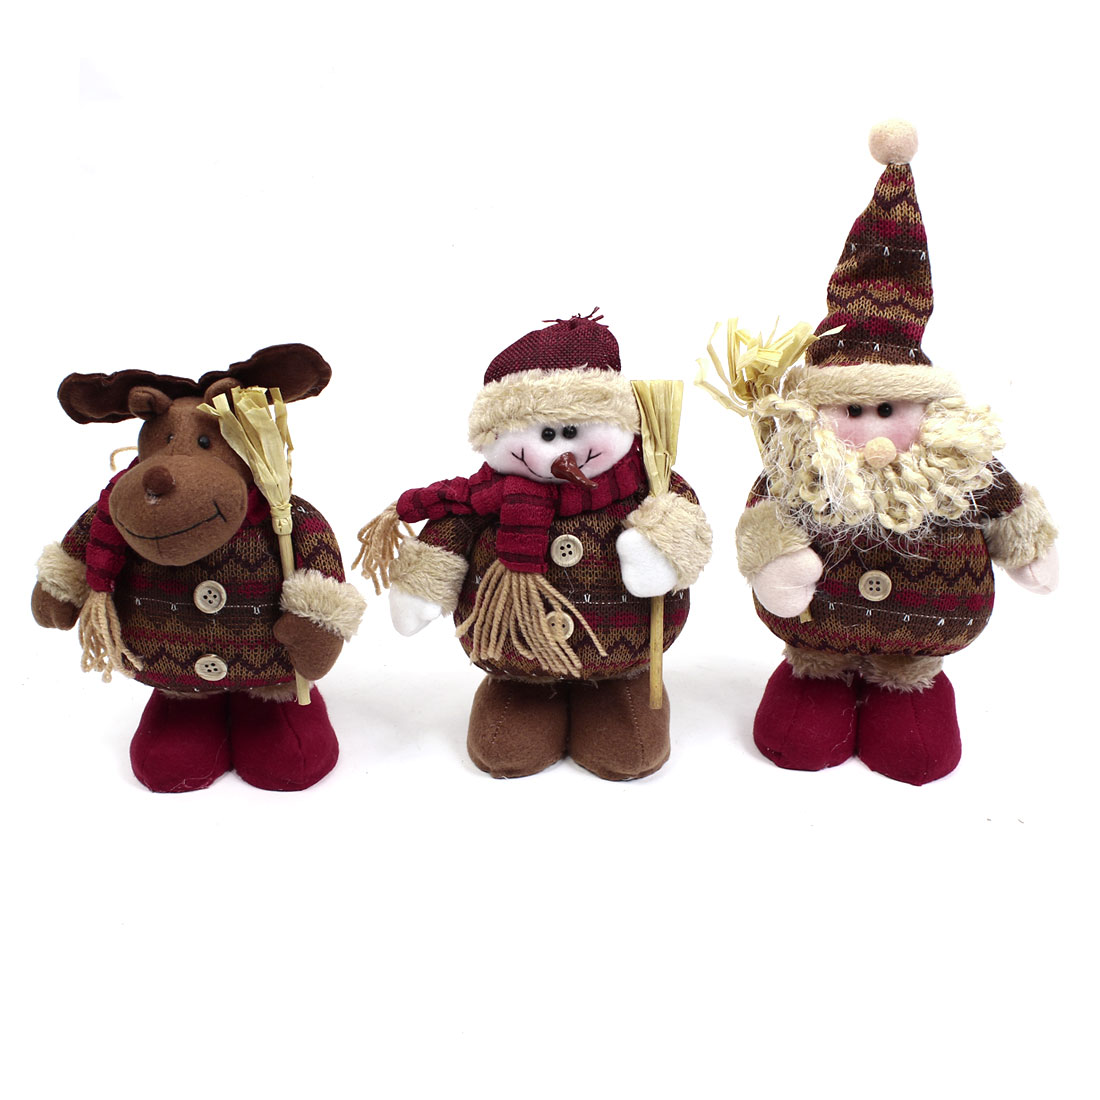 Santa Claus Snowman Reindeer Xmas Christmas Toy Gift Red Coffee Color 3 in 1